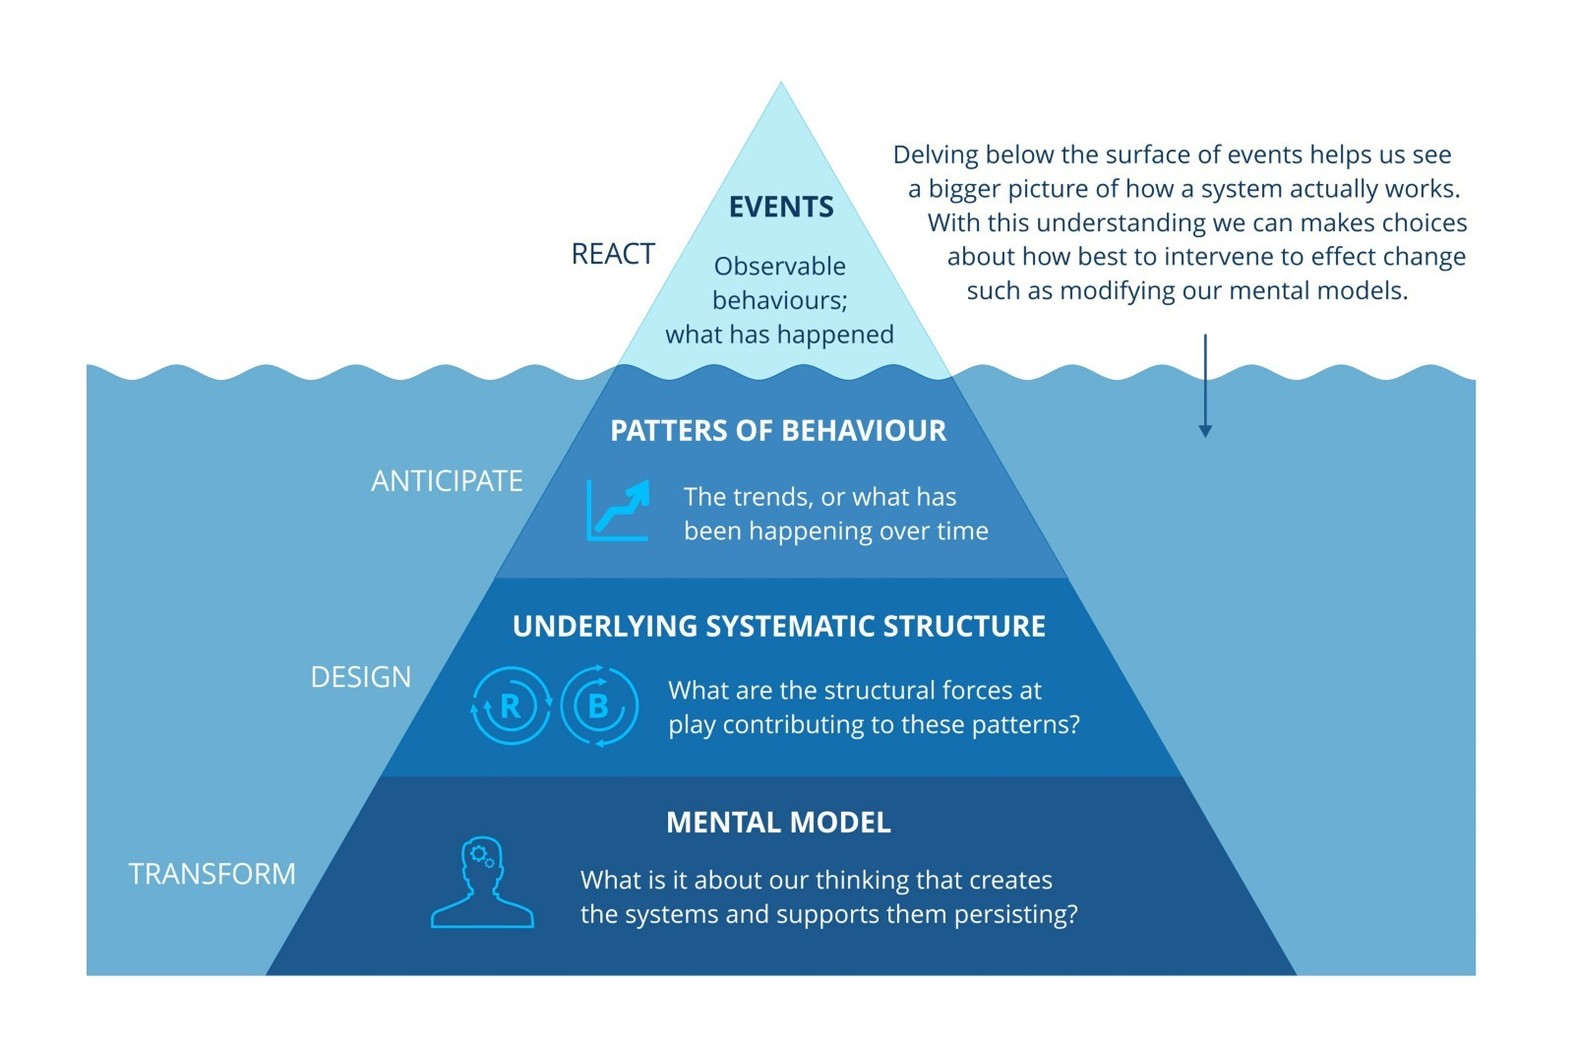 The Iceberg model of Systems Thinking. Above the water are events that we react to. Under the surface of the water are Patterns of Behavior that we anticipate, Underlying Systematic Structures that we design, and Mental Models that we transform. Each layer from the bottom engenders the layer above it. Intervening in a system at the lowest level (mental models) has the highest leverage for lasting change.